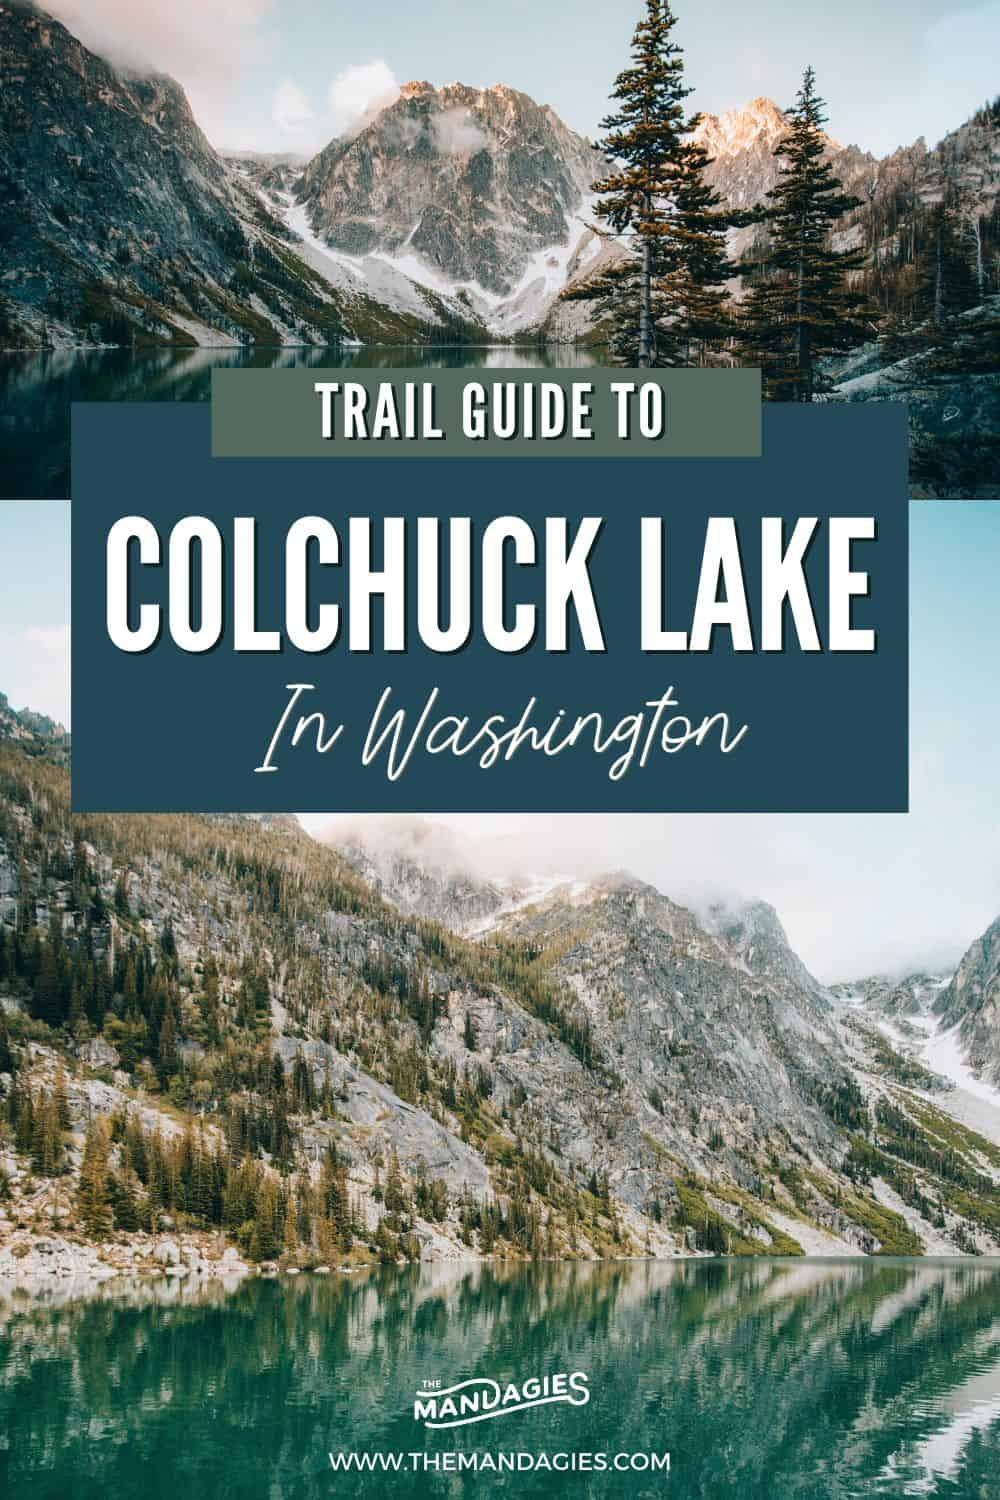 Hike one of the most beautiful trails in Washington state - Colchuck Lake hike! In this post, we're showing you everything you need to know about hiking to this lake in The Enchantments, what to pack for your hiking trip, beautiful PNW photos and more! Save this for your next trip to Washington! #washington #hiking #cascades #enchantments #summer #sunrise #photography #westcoast #PNW #pacificnorthwest #washingtonstate